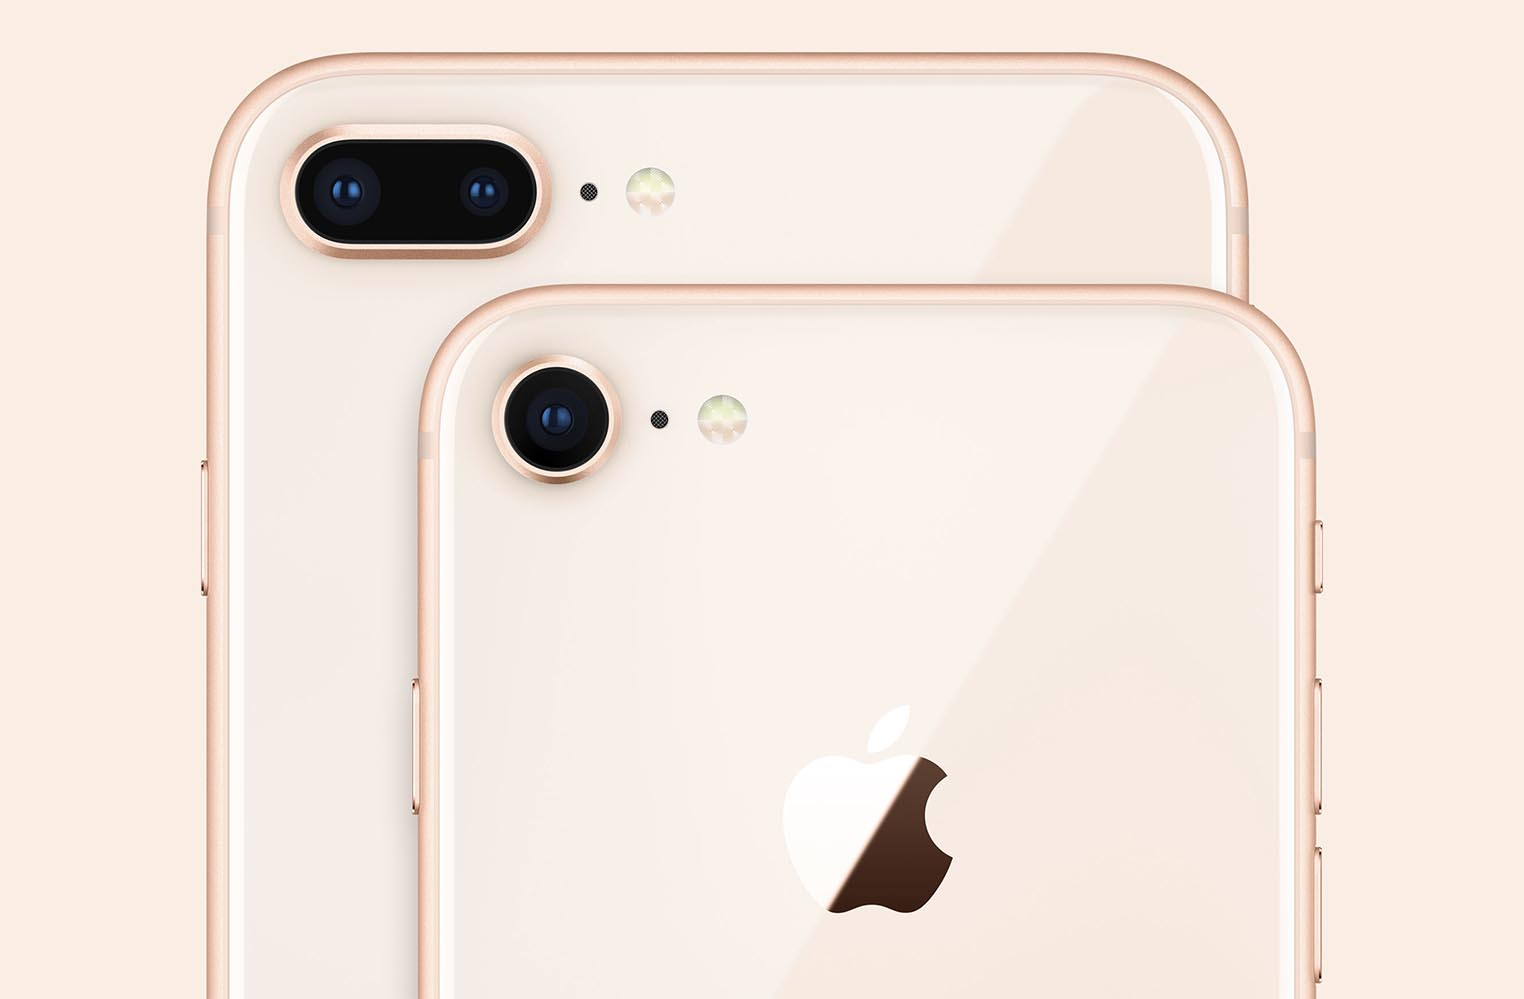 iPhone 8 appareils photos